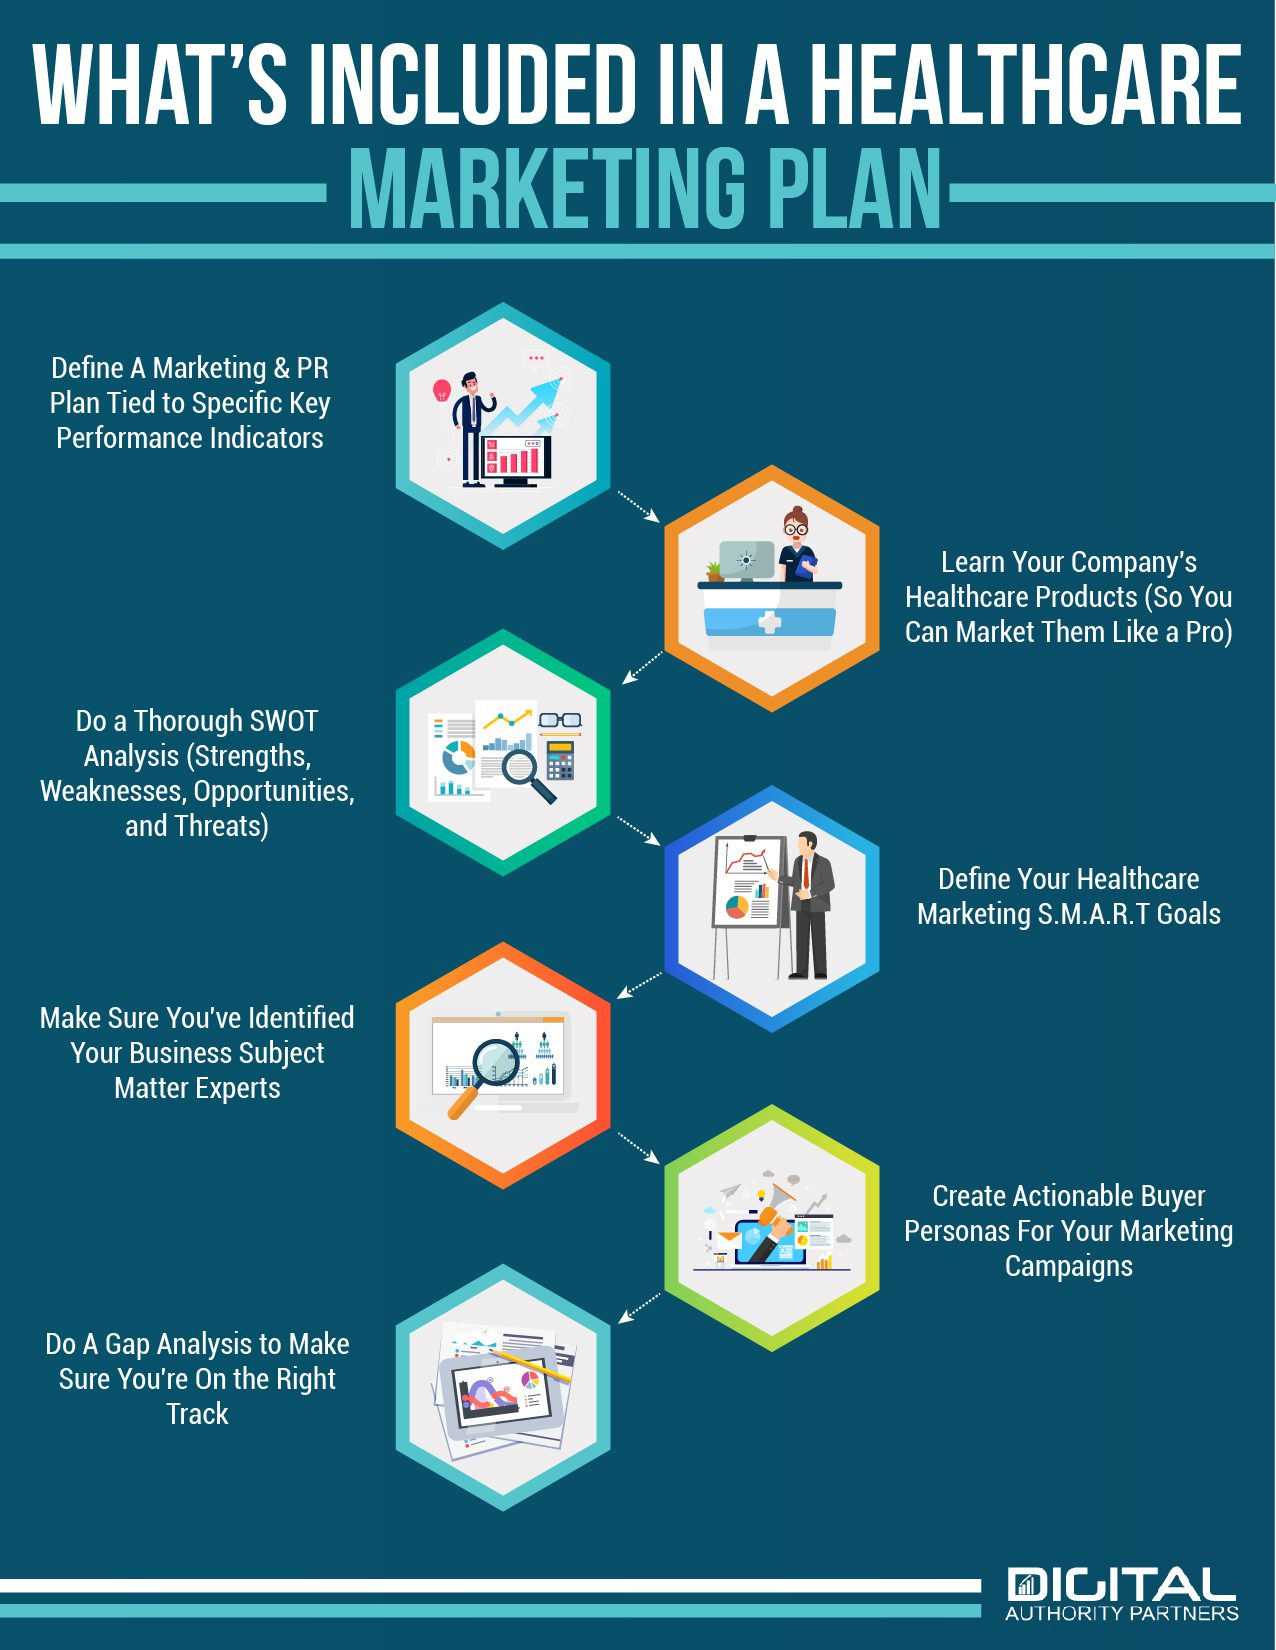 what's included in a healthcare marketing plan